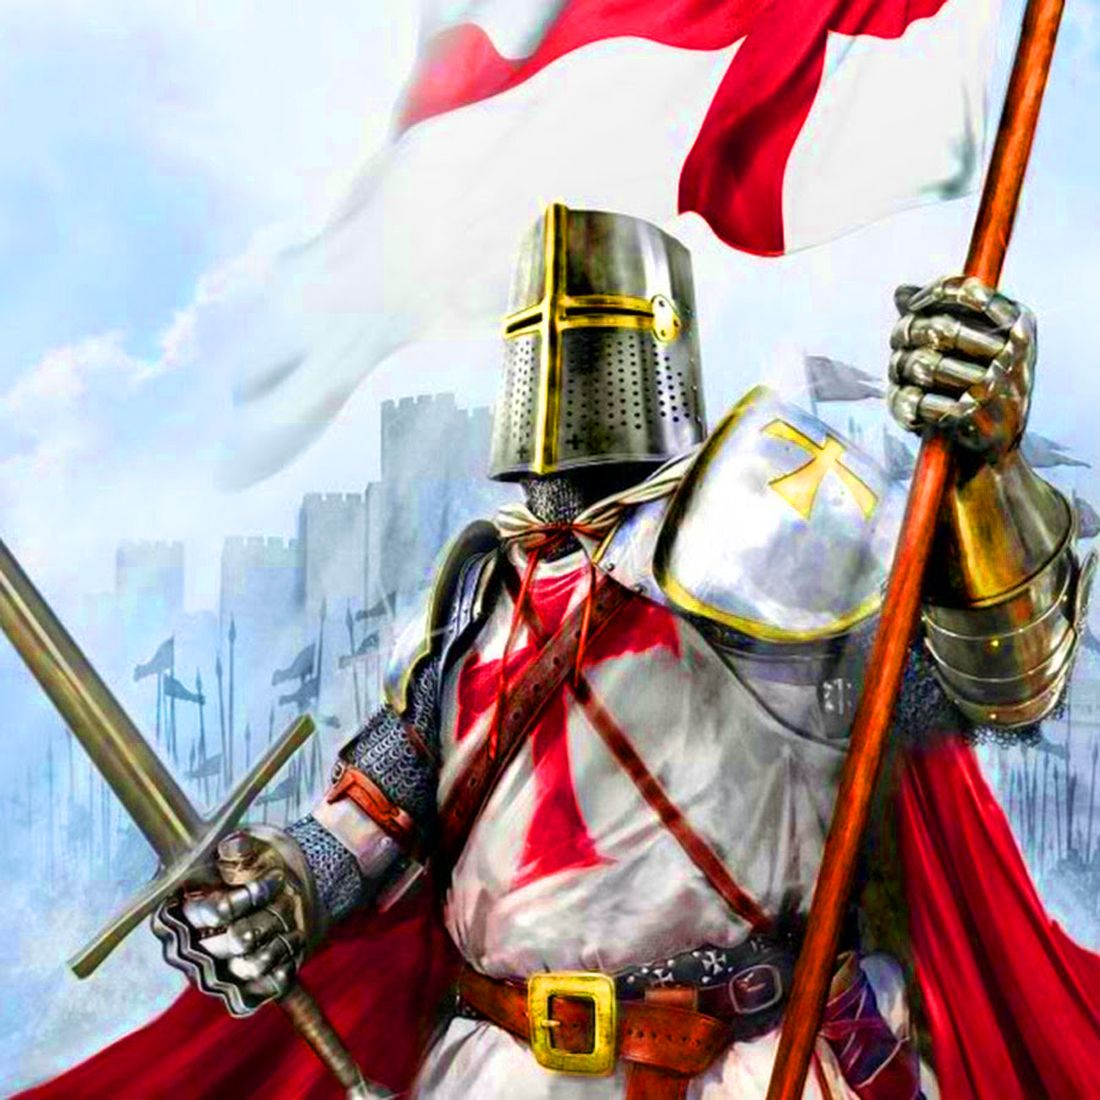 Crusader is a knight who fights against infidels